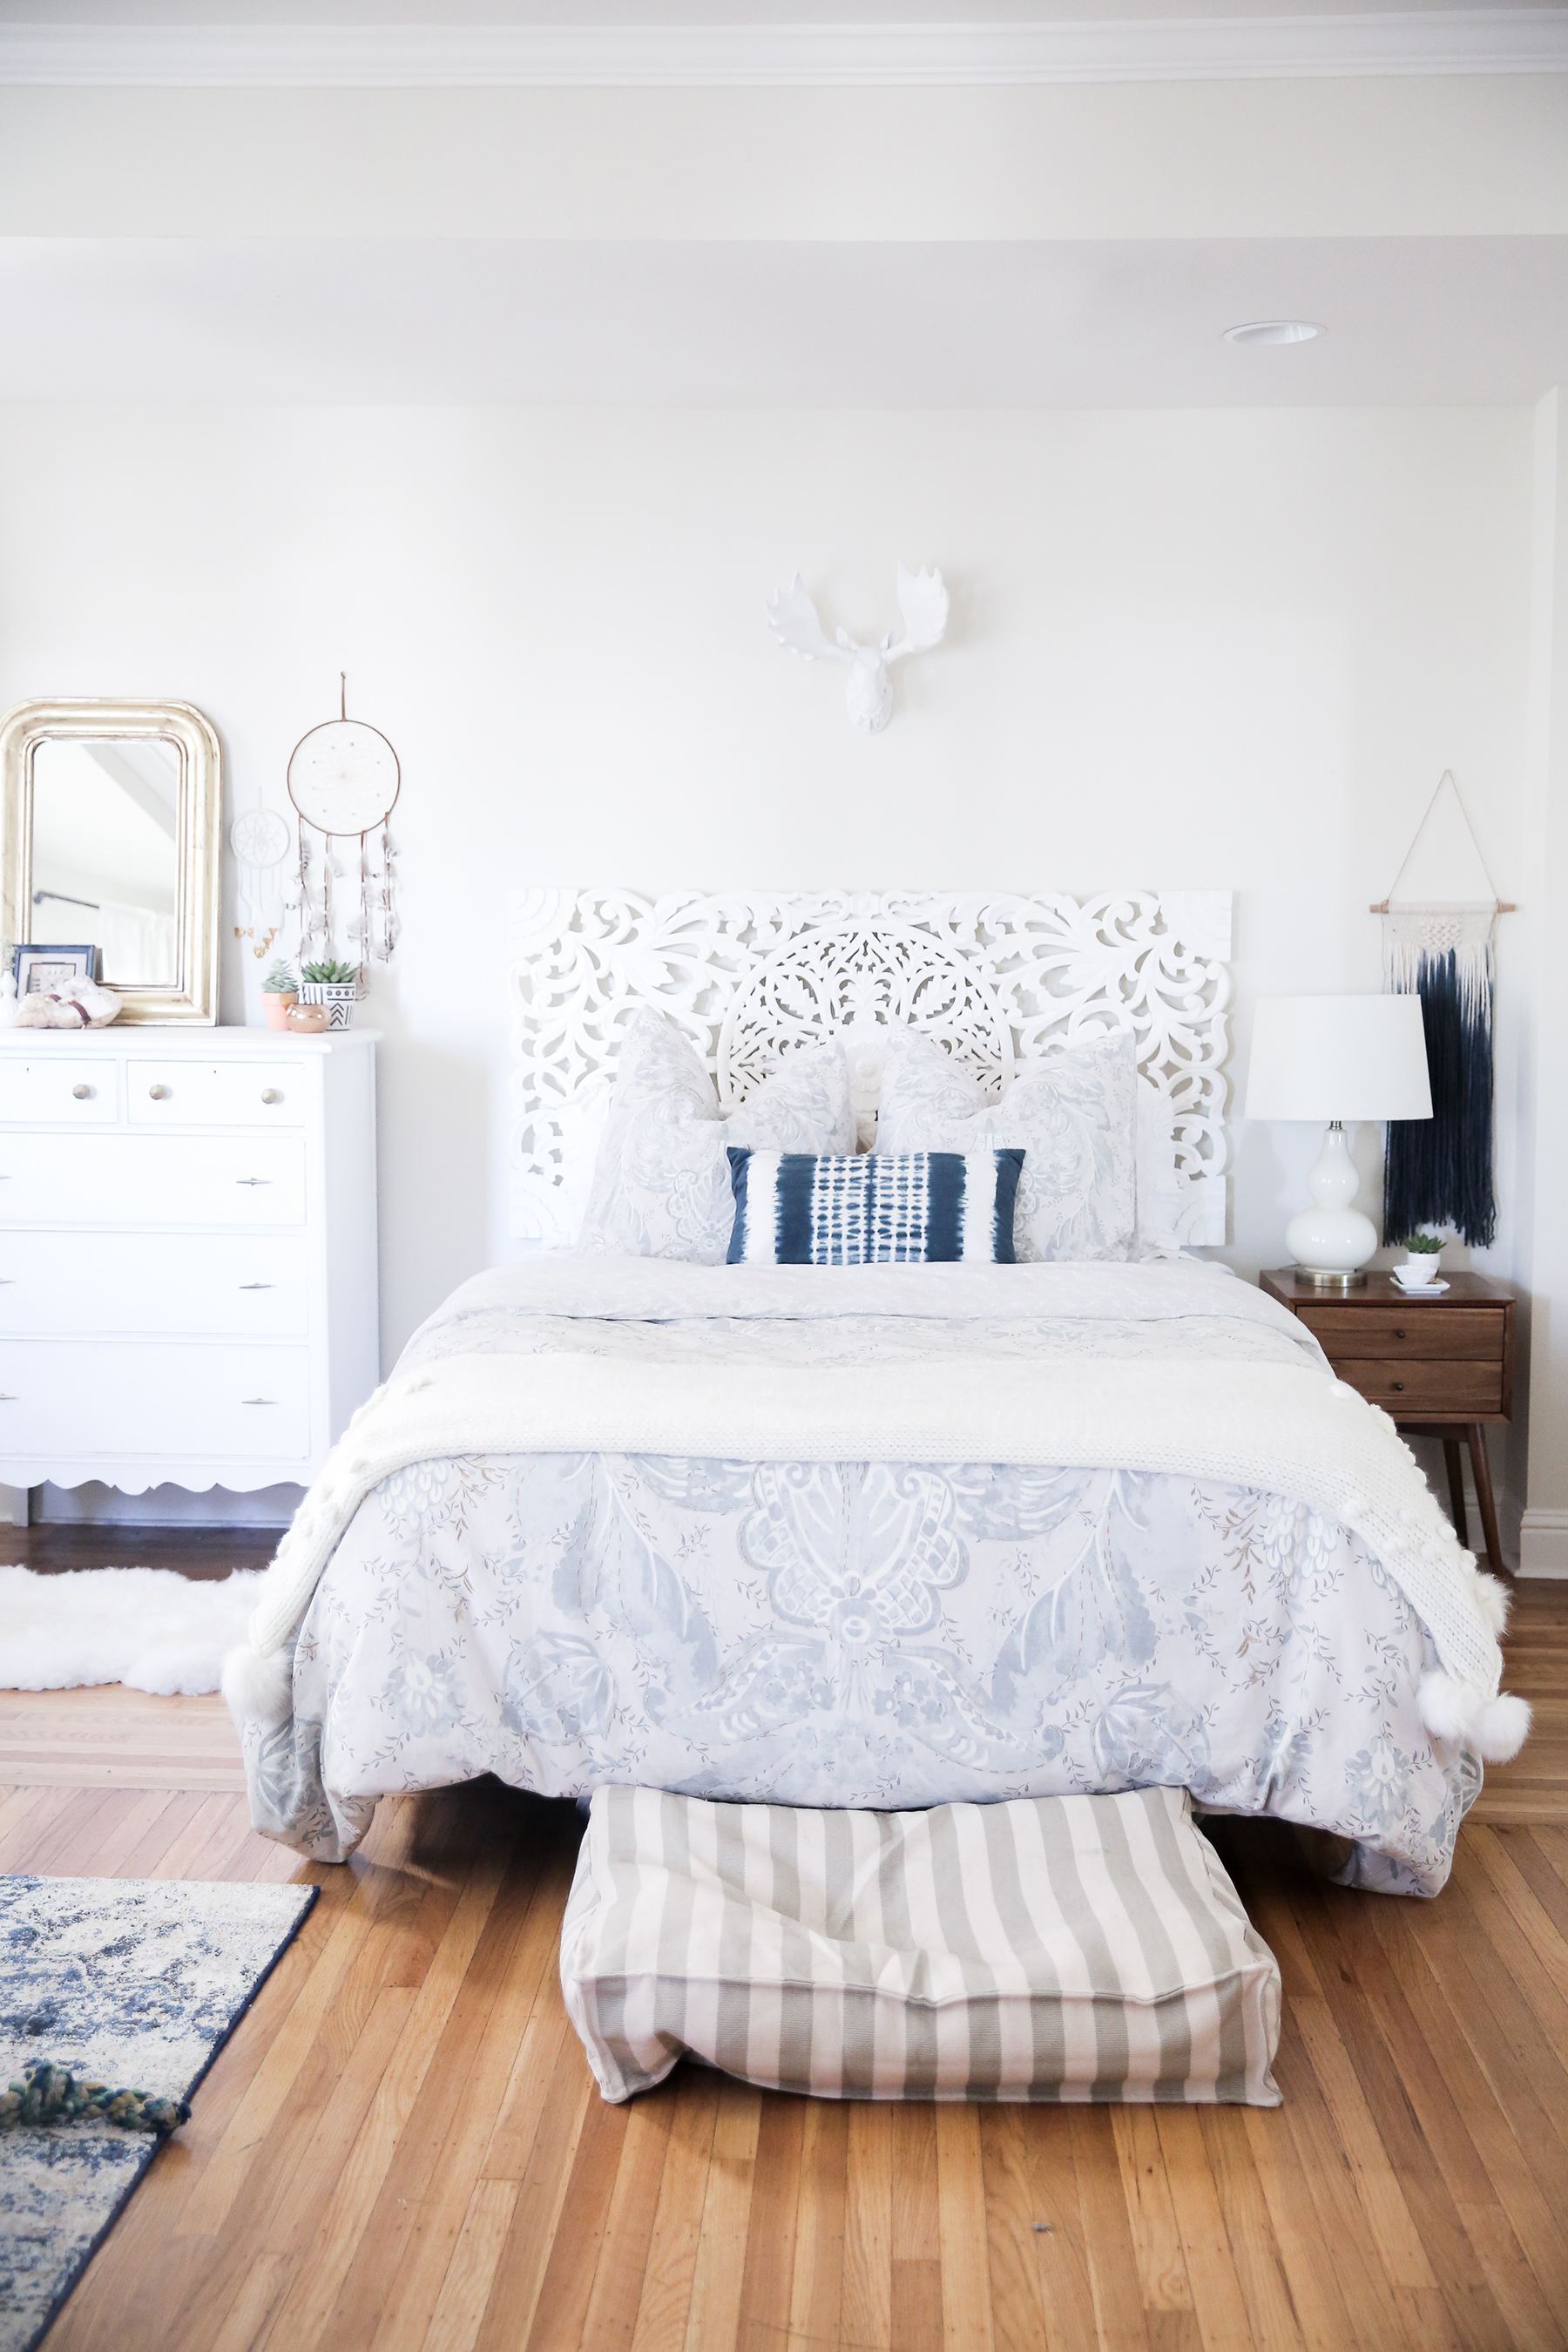 top 10 popular posts of 2015 from Advicefroma20Something.com, all white bedroom, white and blue bedroom, urban outfitters home decor, anthropologie home decor, white headboard, stylish dog bed, anthropologie bedding, boho decor, bright bedroom ideas, decor ideas